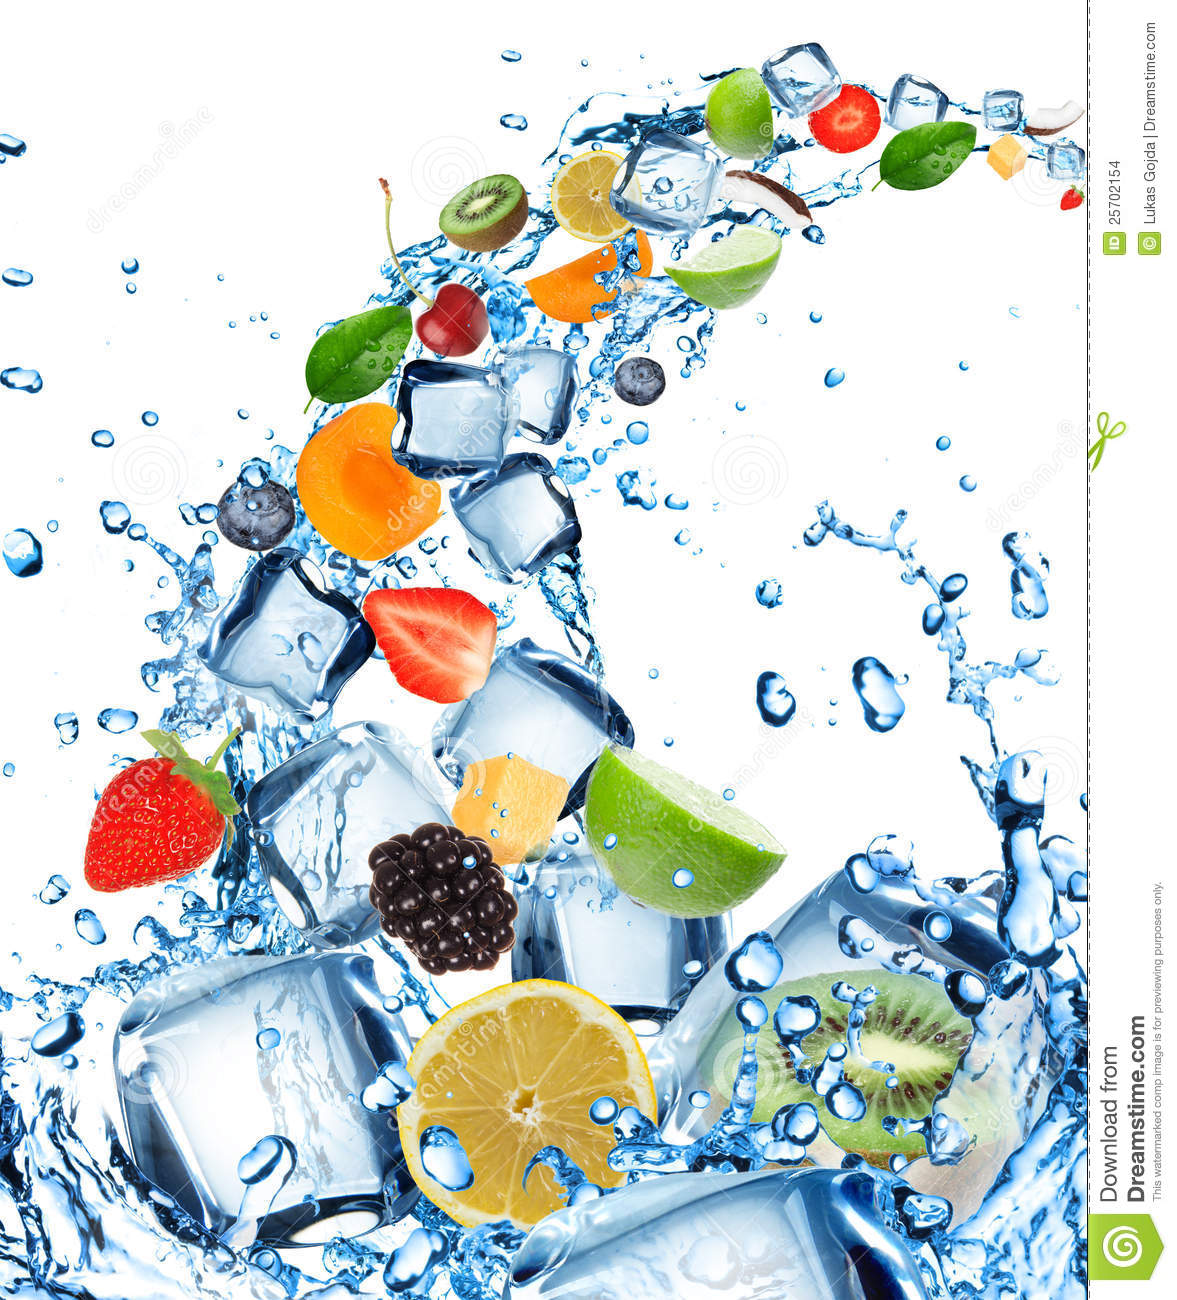 Fototapete Küche Obst Fresh Fruit In Water Splash Stock Photo Image Of Color